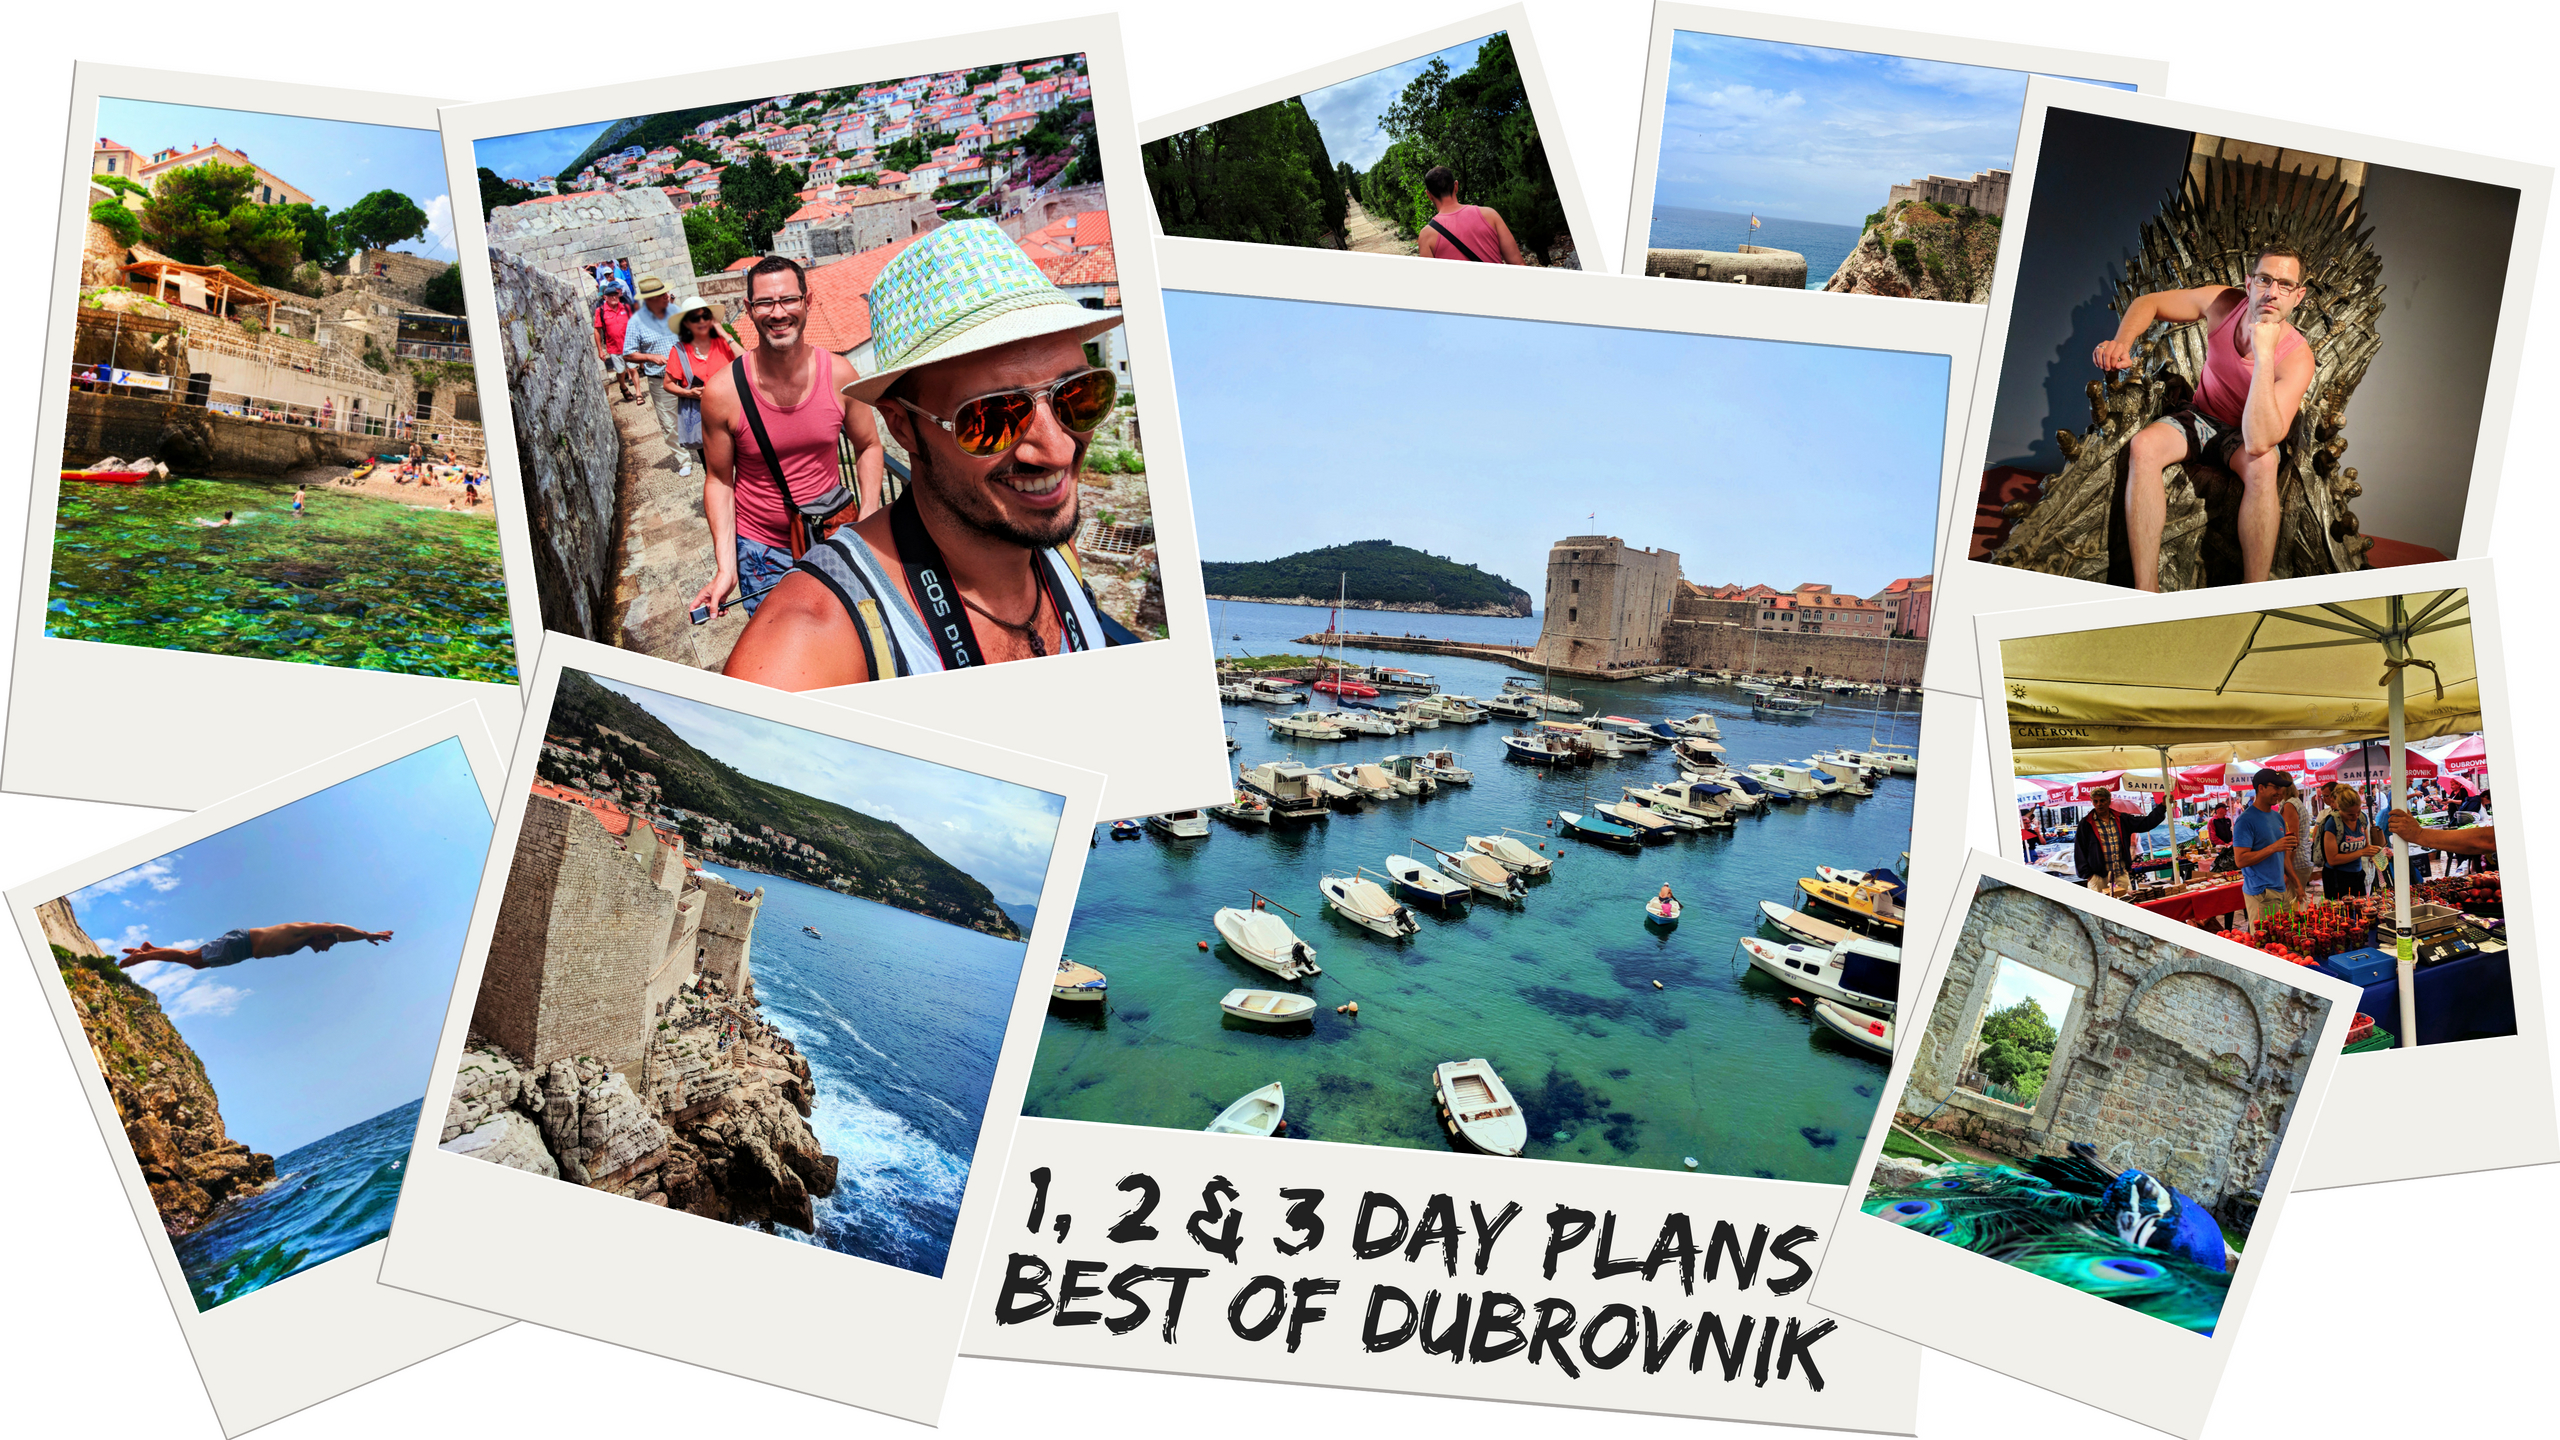 Best Activities in Dubrovnik: 1, 2 3 day itineraries